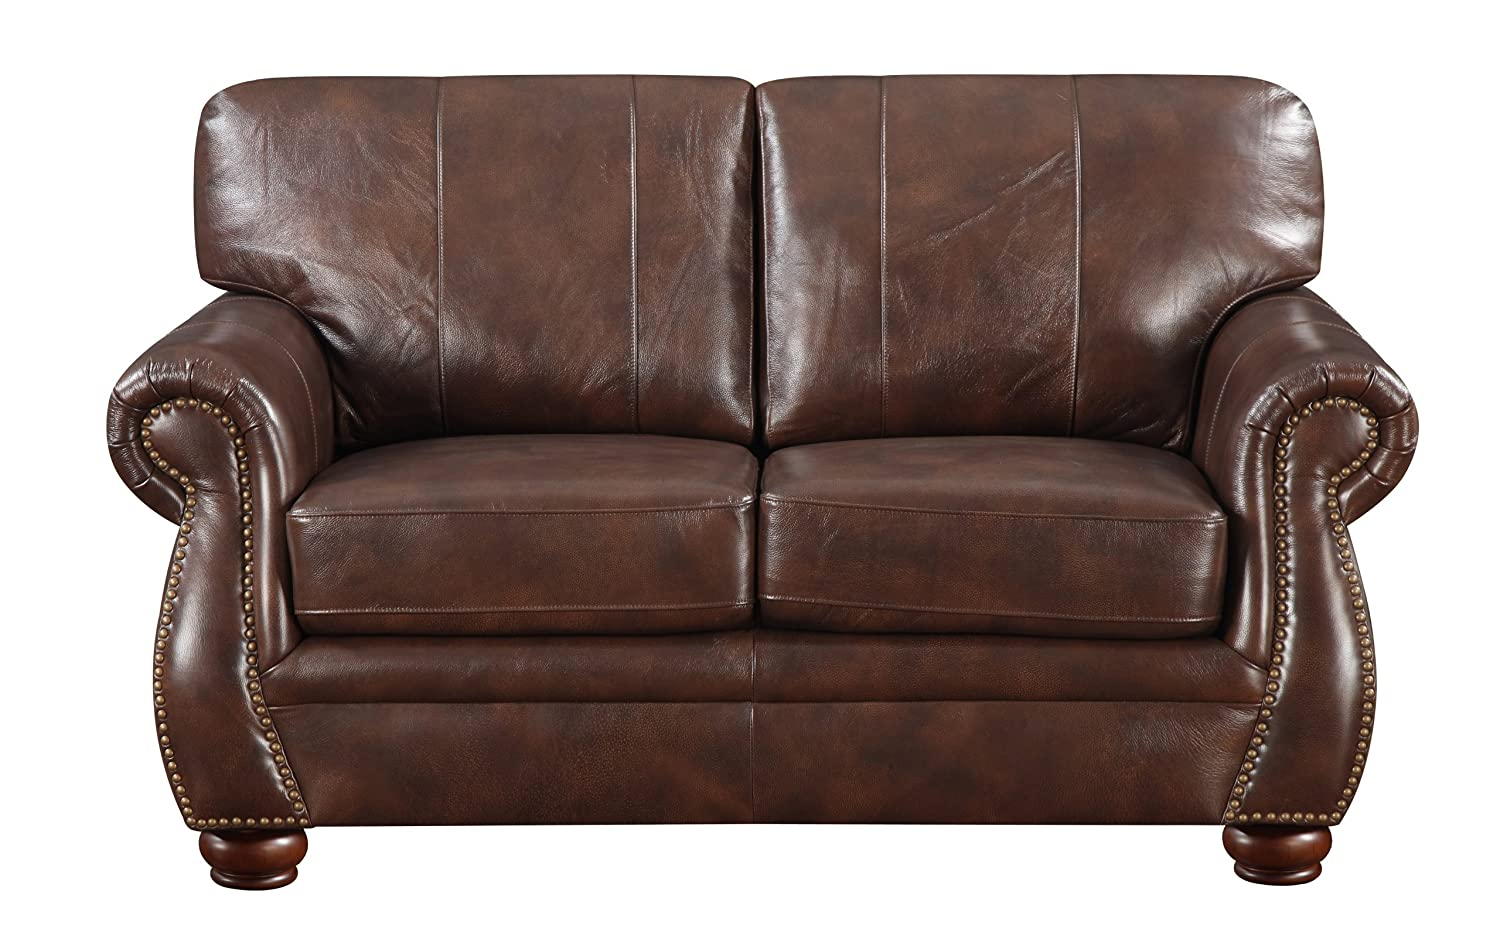 Contemporary Loveseat in Natural Brown